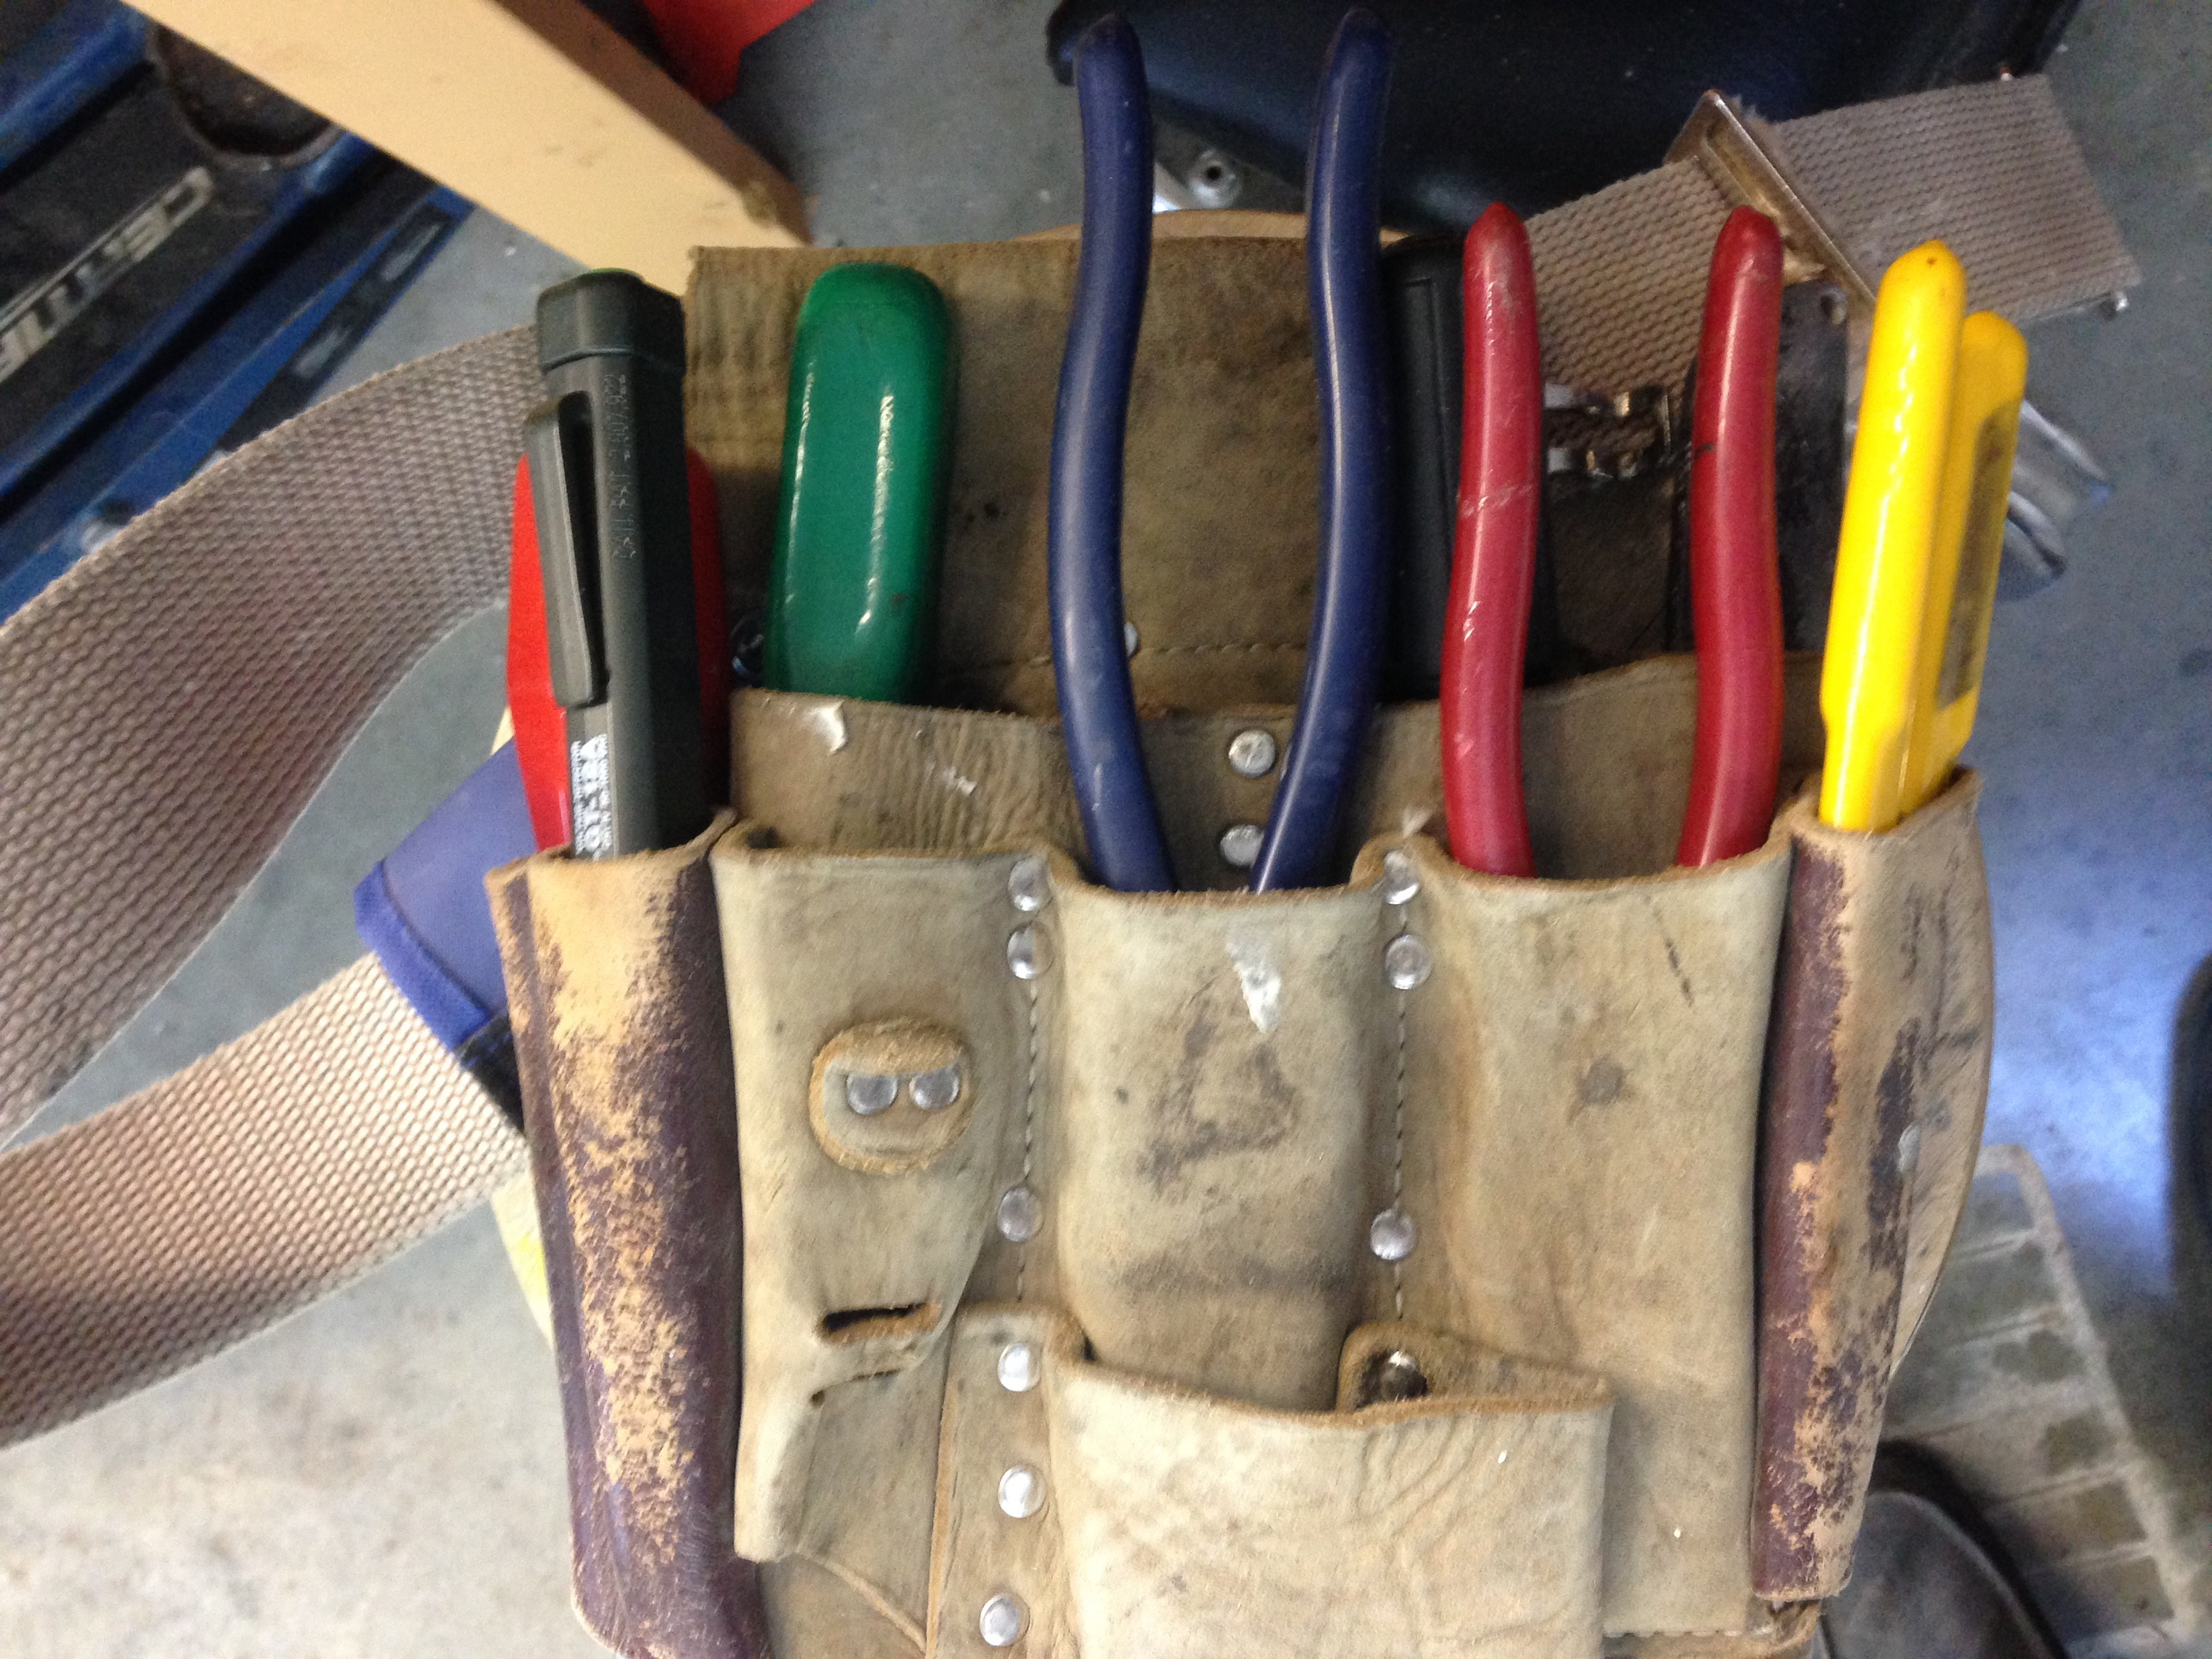 picture of my tools used - life as an electrician in the Comox Valley